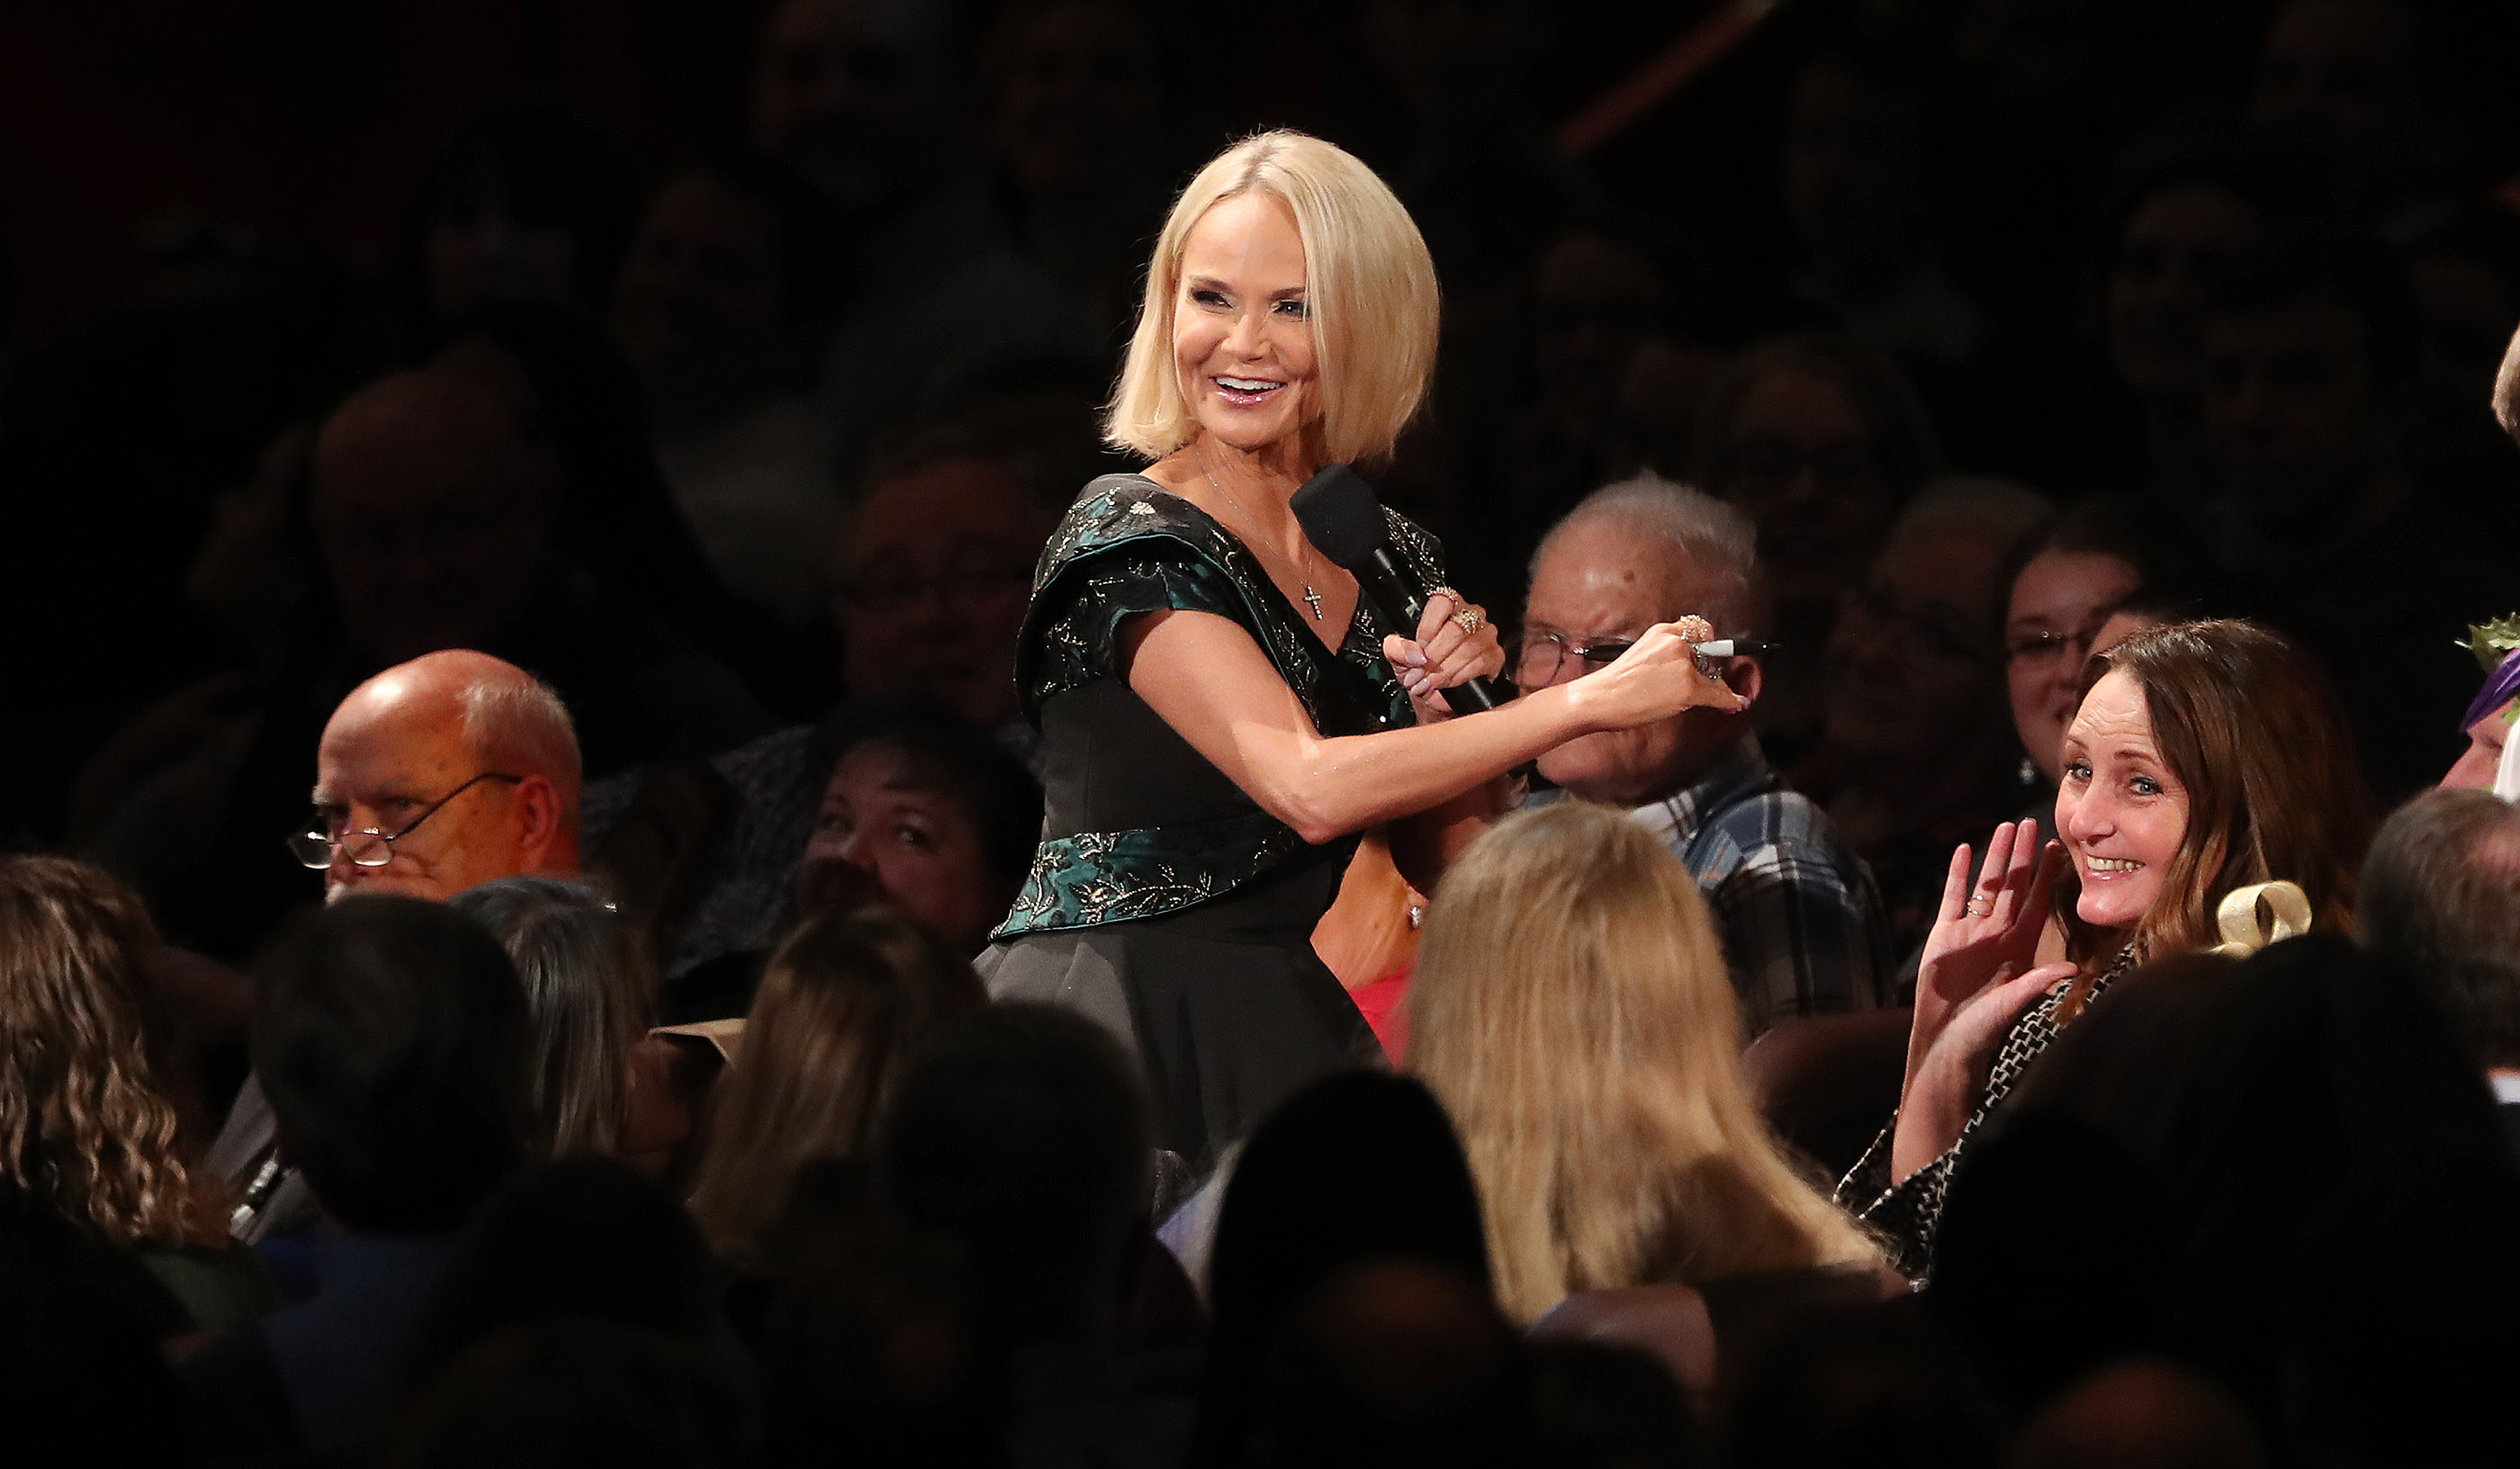 Kristin Chenoweth talks with audience members while singing with the Tabernacle Choir at Temple Square during their opening Christmas concert at the Conference Center in Salt Lake City on Thursday, Dec. 13, 2018.